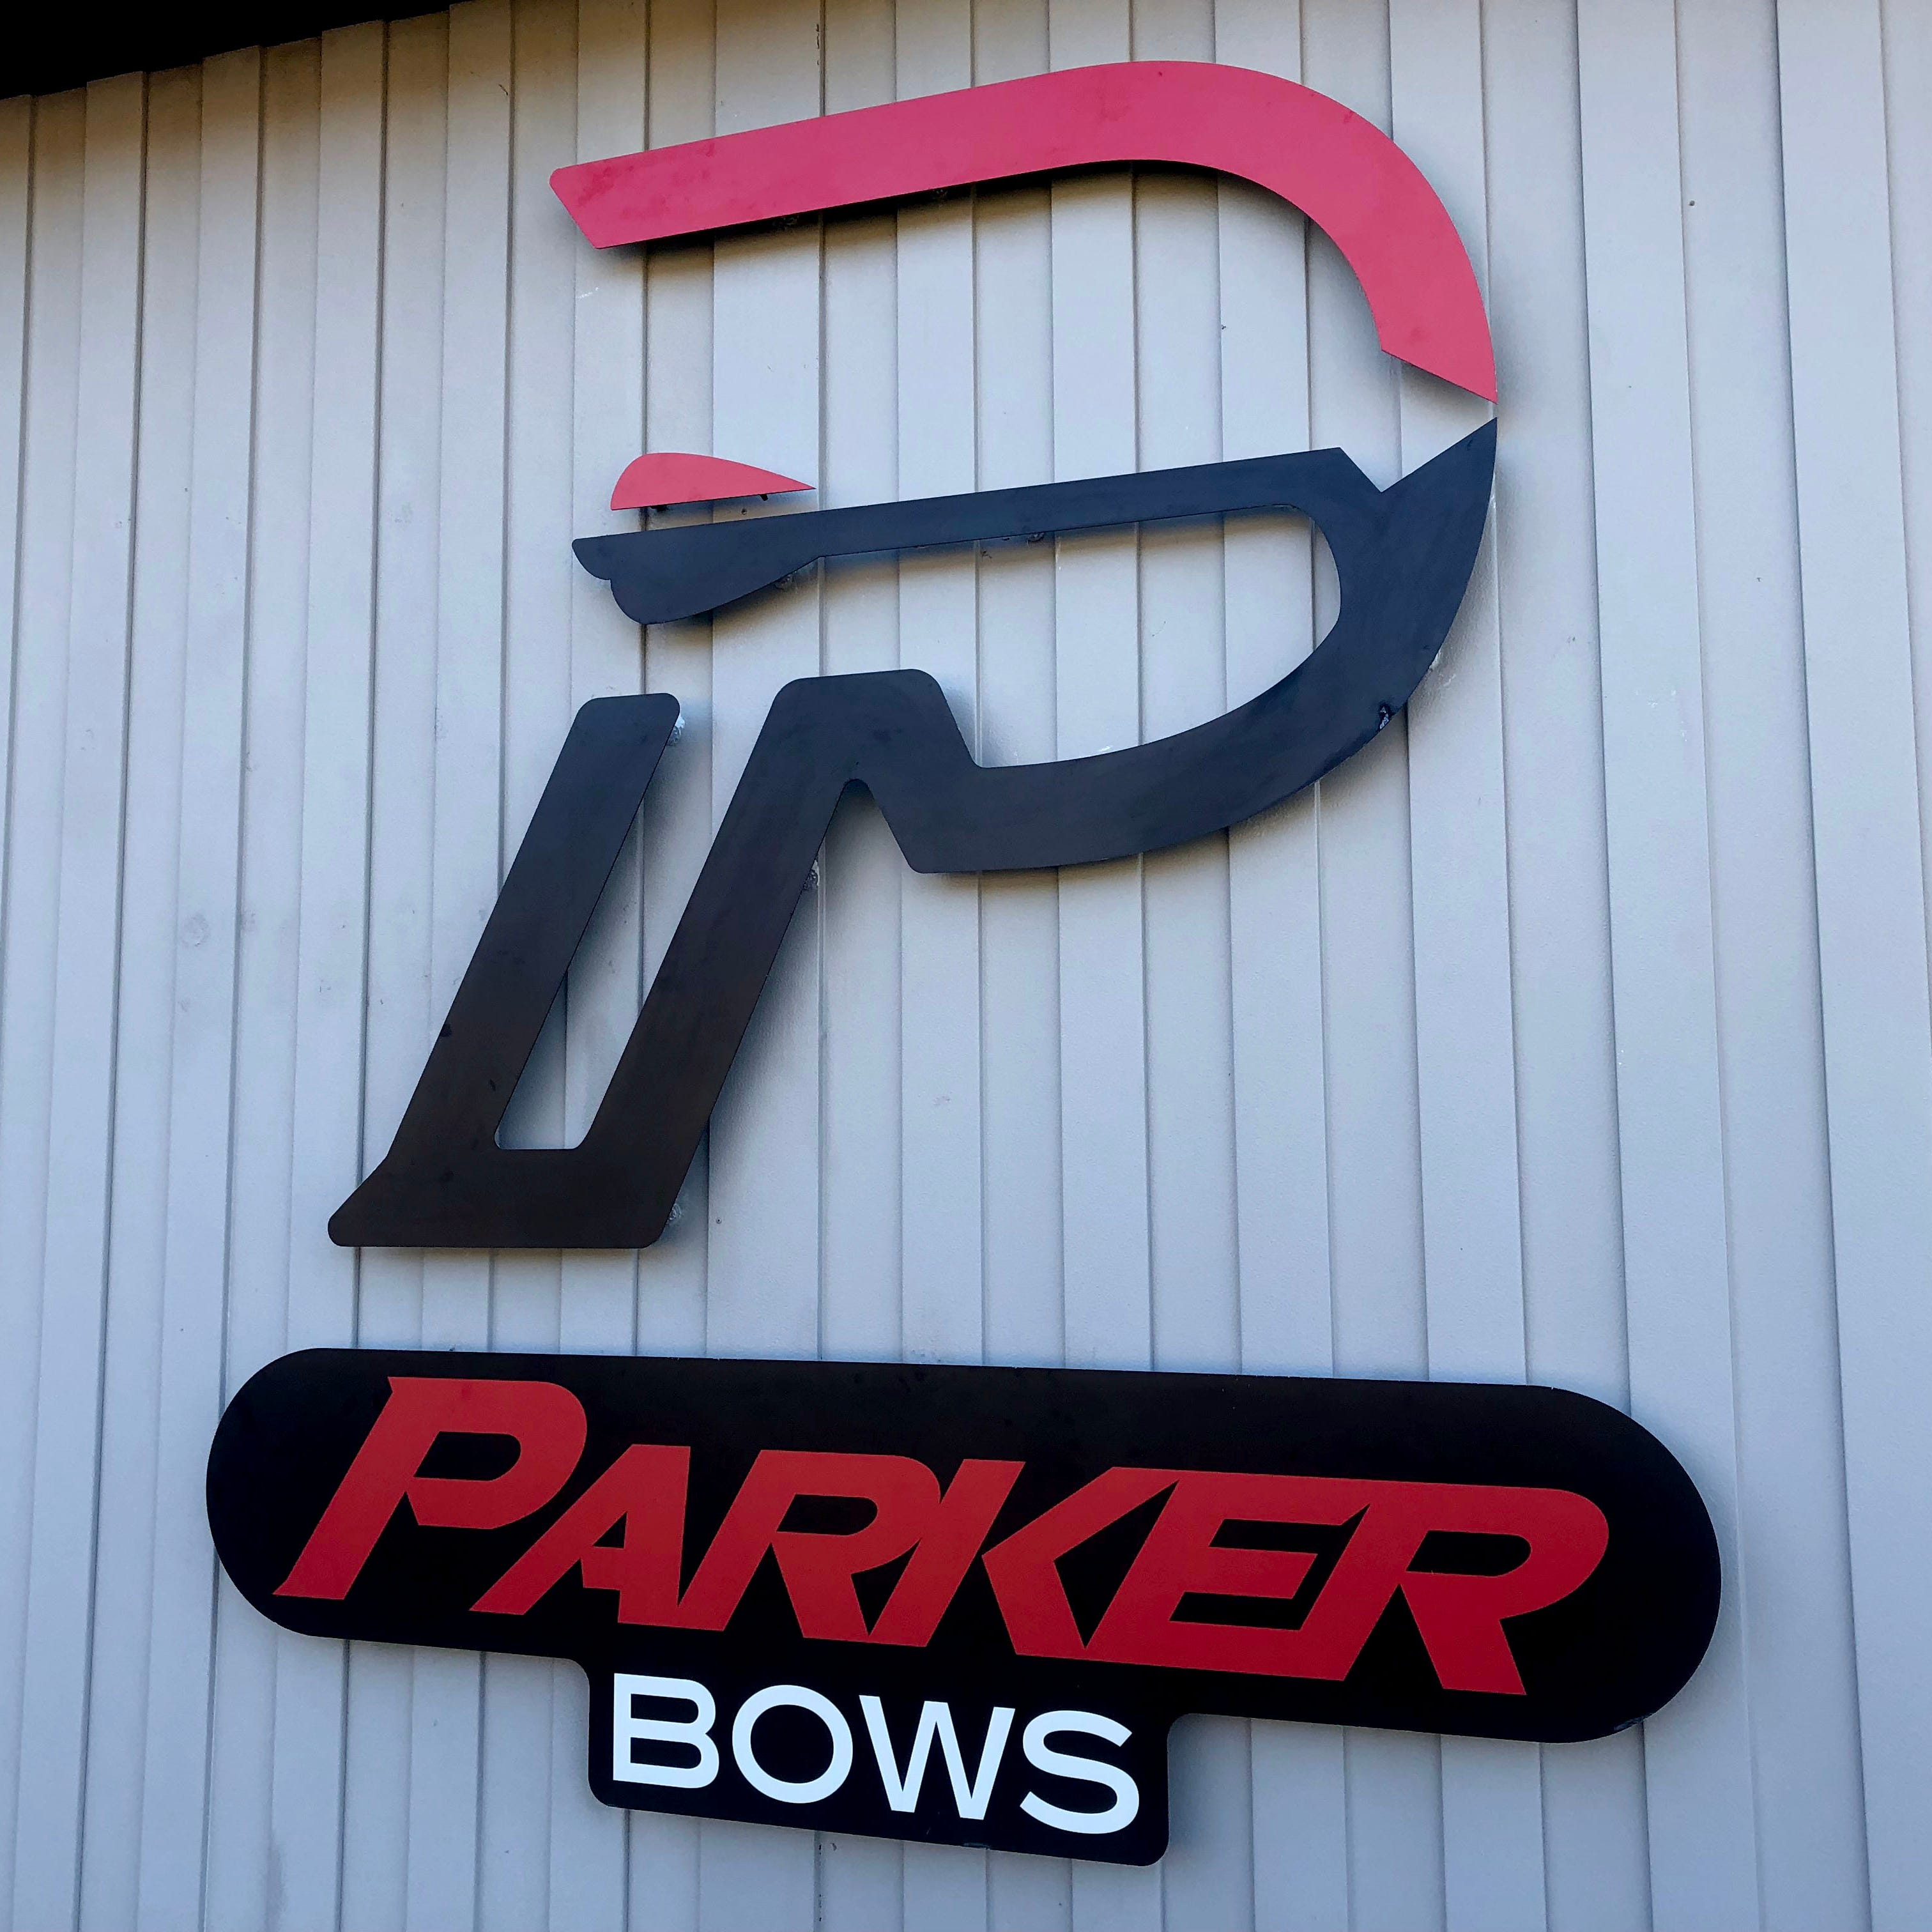 Augusta County's Parker Bows going out of business